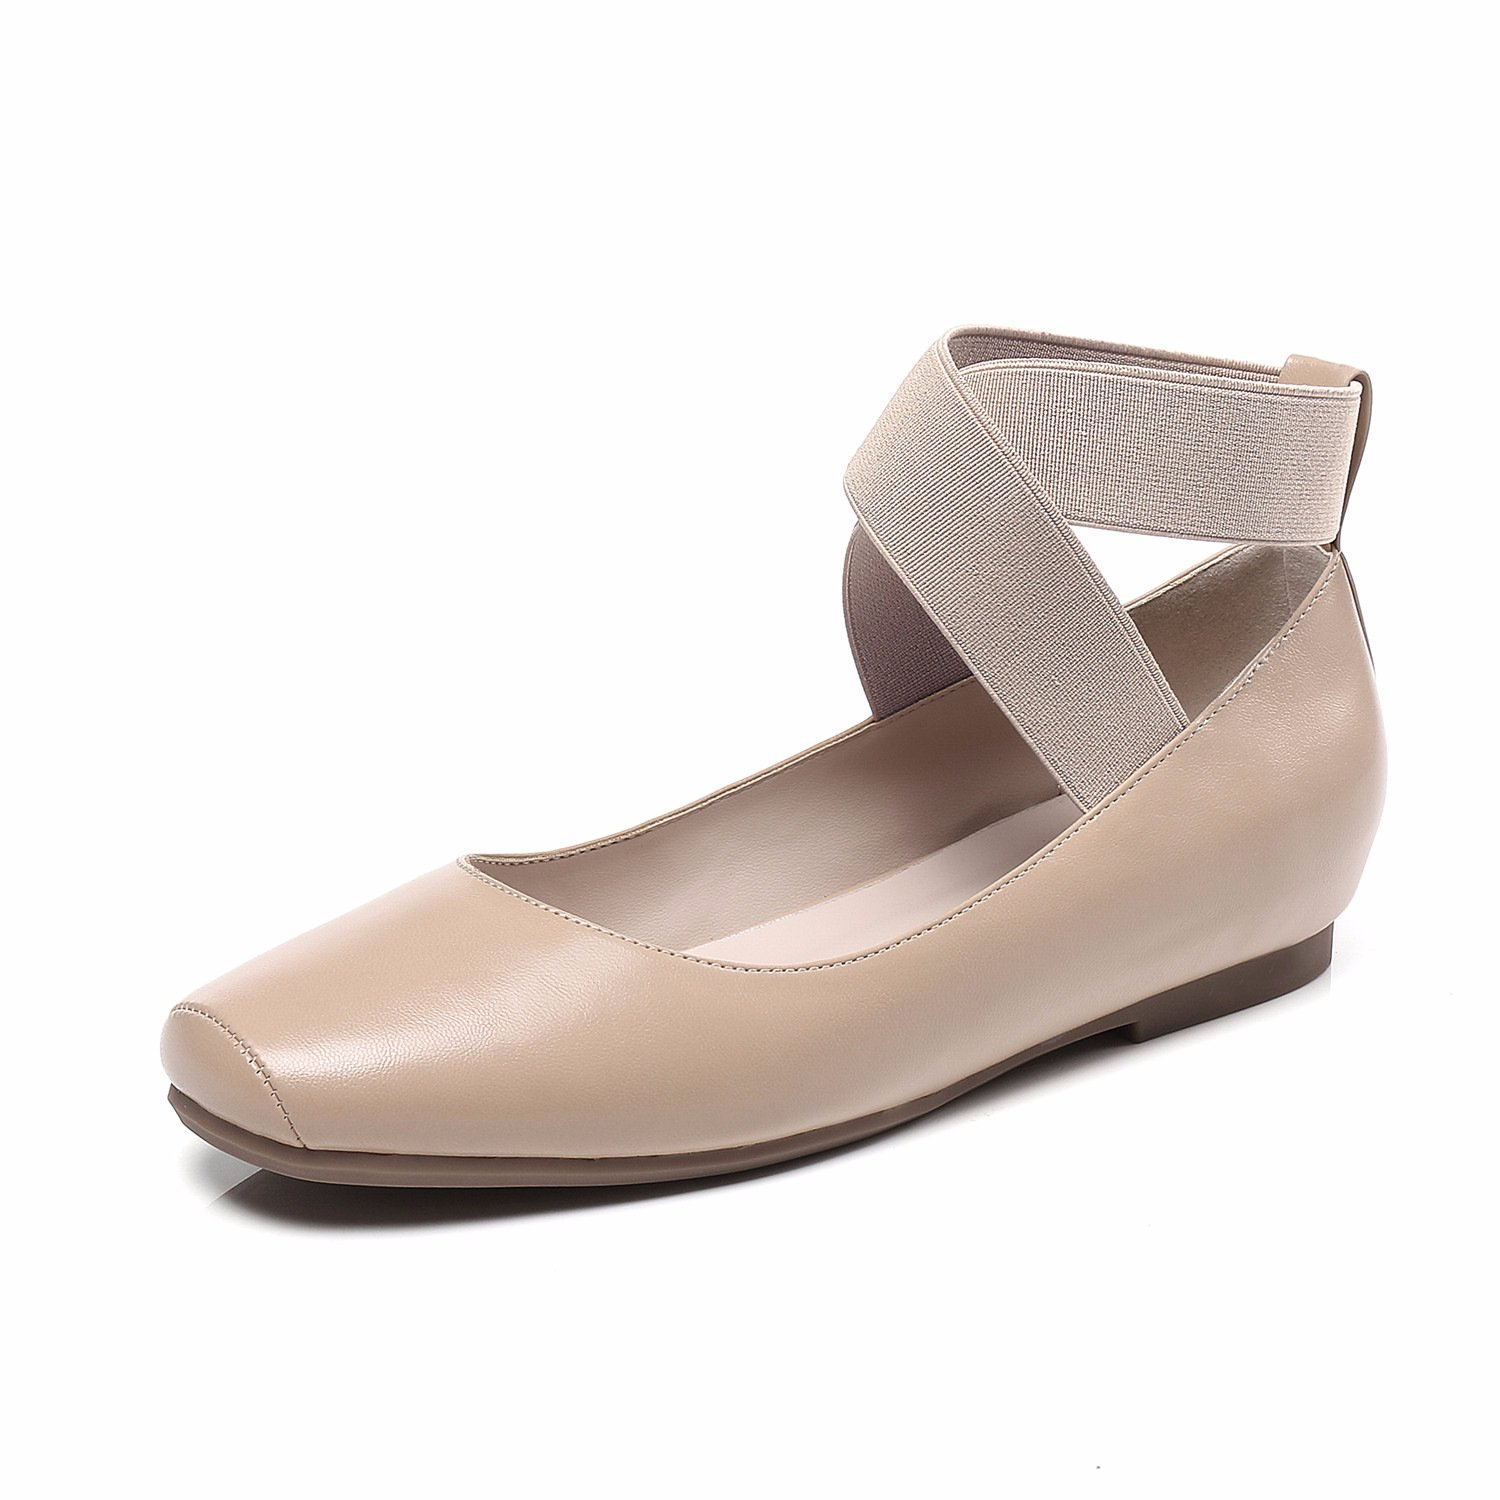 100FIXEO Nude Women's Square Toe Elastic Cross Ankle Strap Ballet Flats Size 7 (B) M US